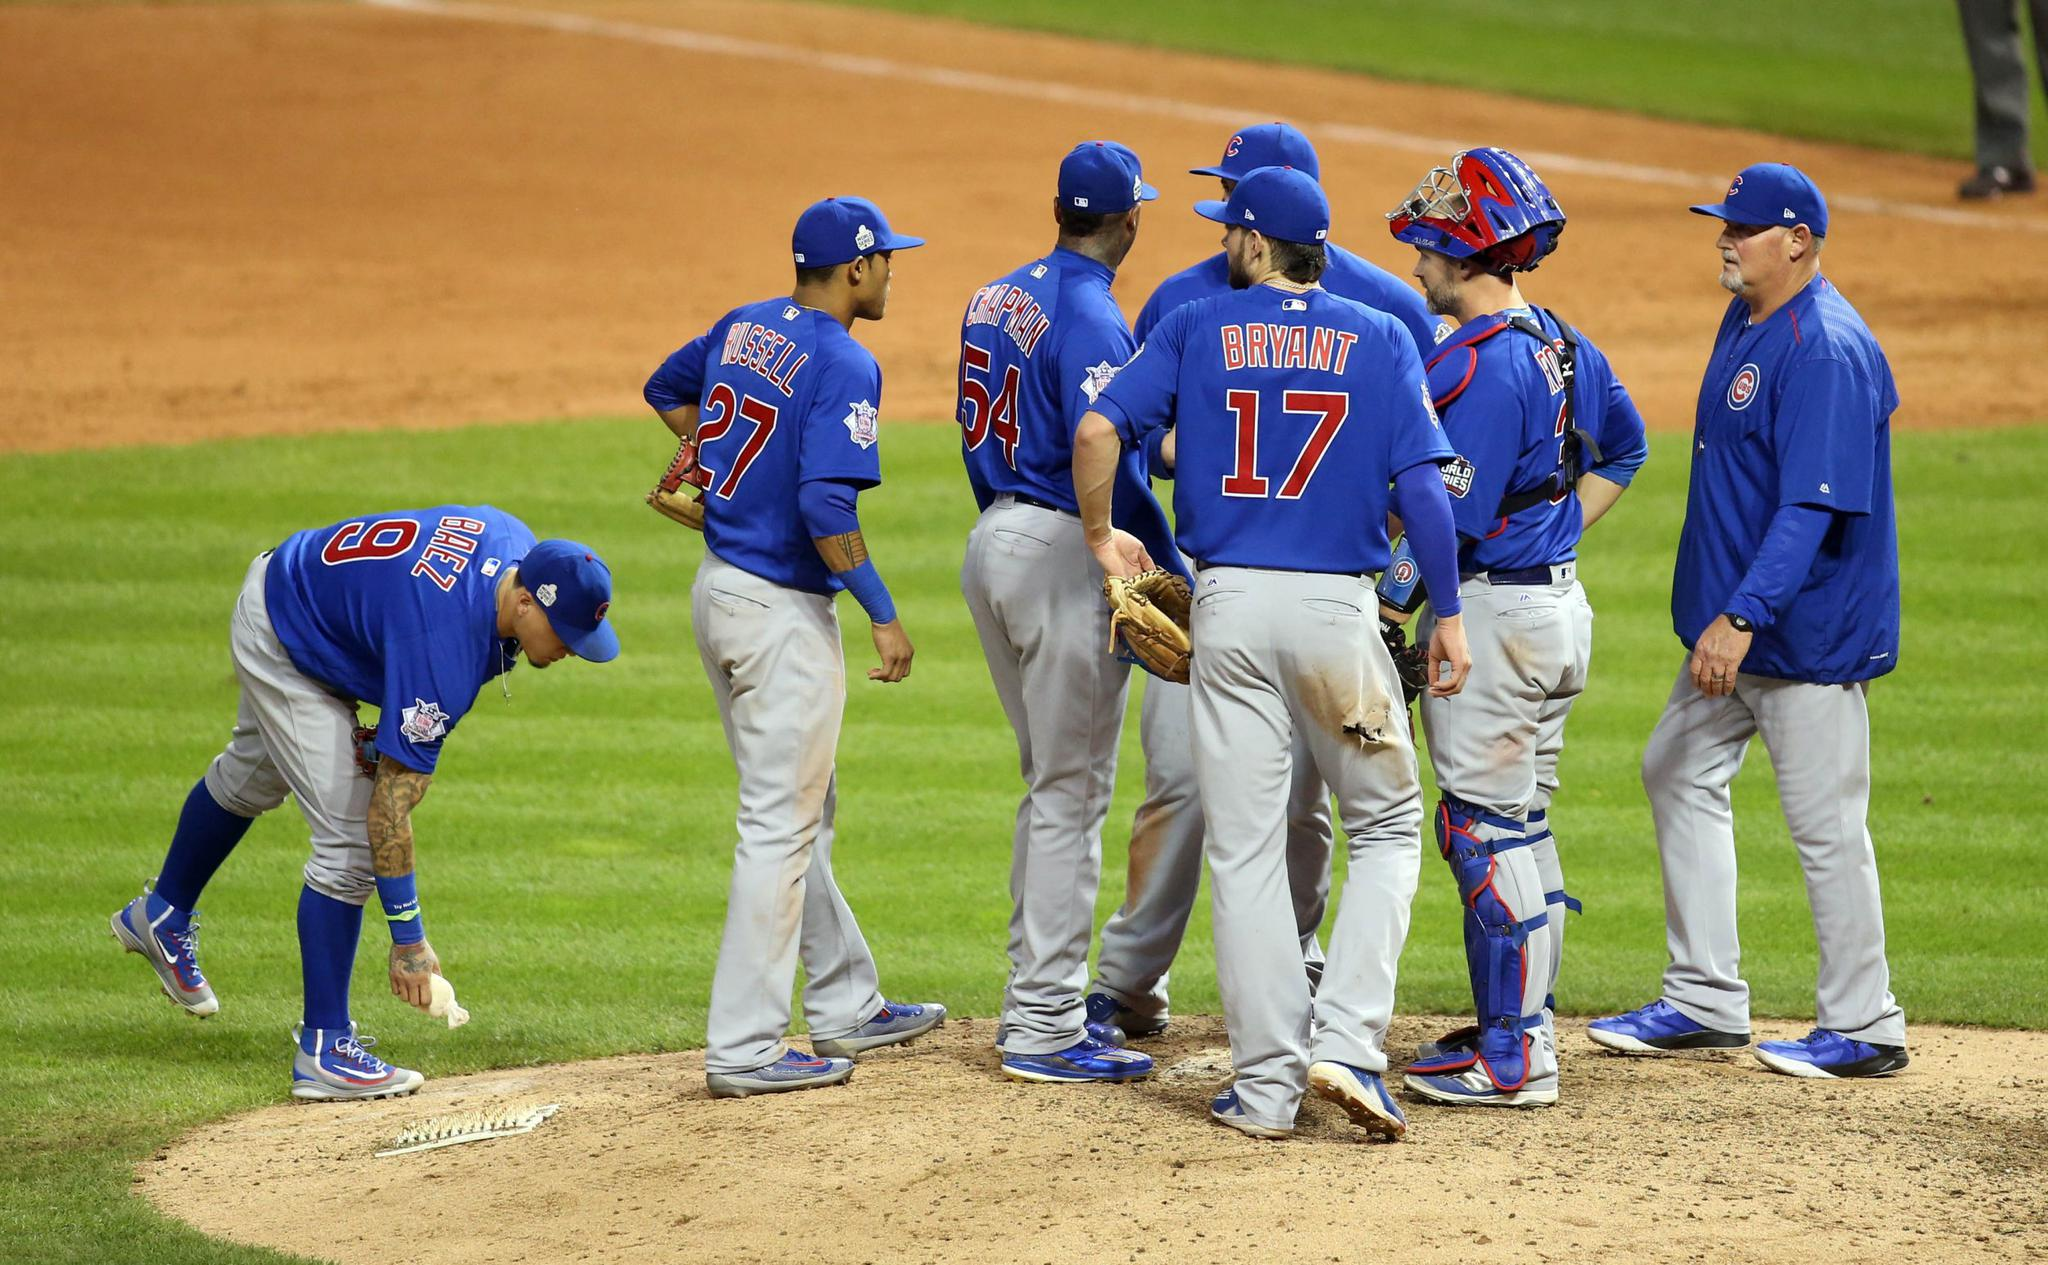 Mound meetings like this one are a factor in the pace of play.